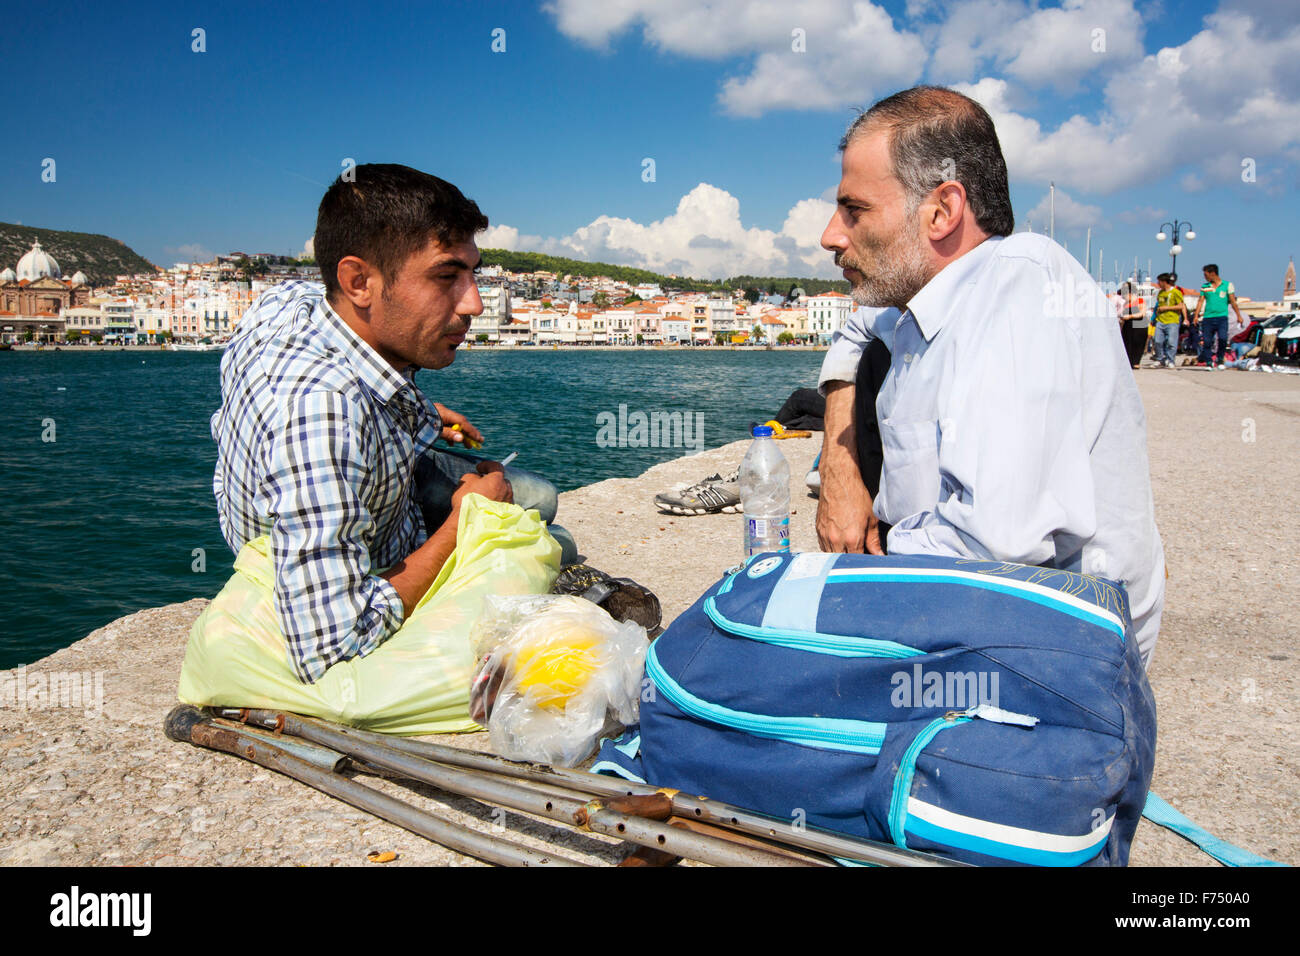 A disabled Syrian migrant who has fled the war and escaped to Europe, landing on the Greek island of Lesvos on the Stock Photo